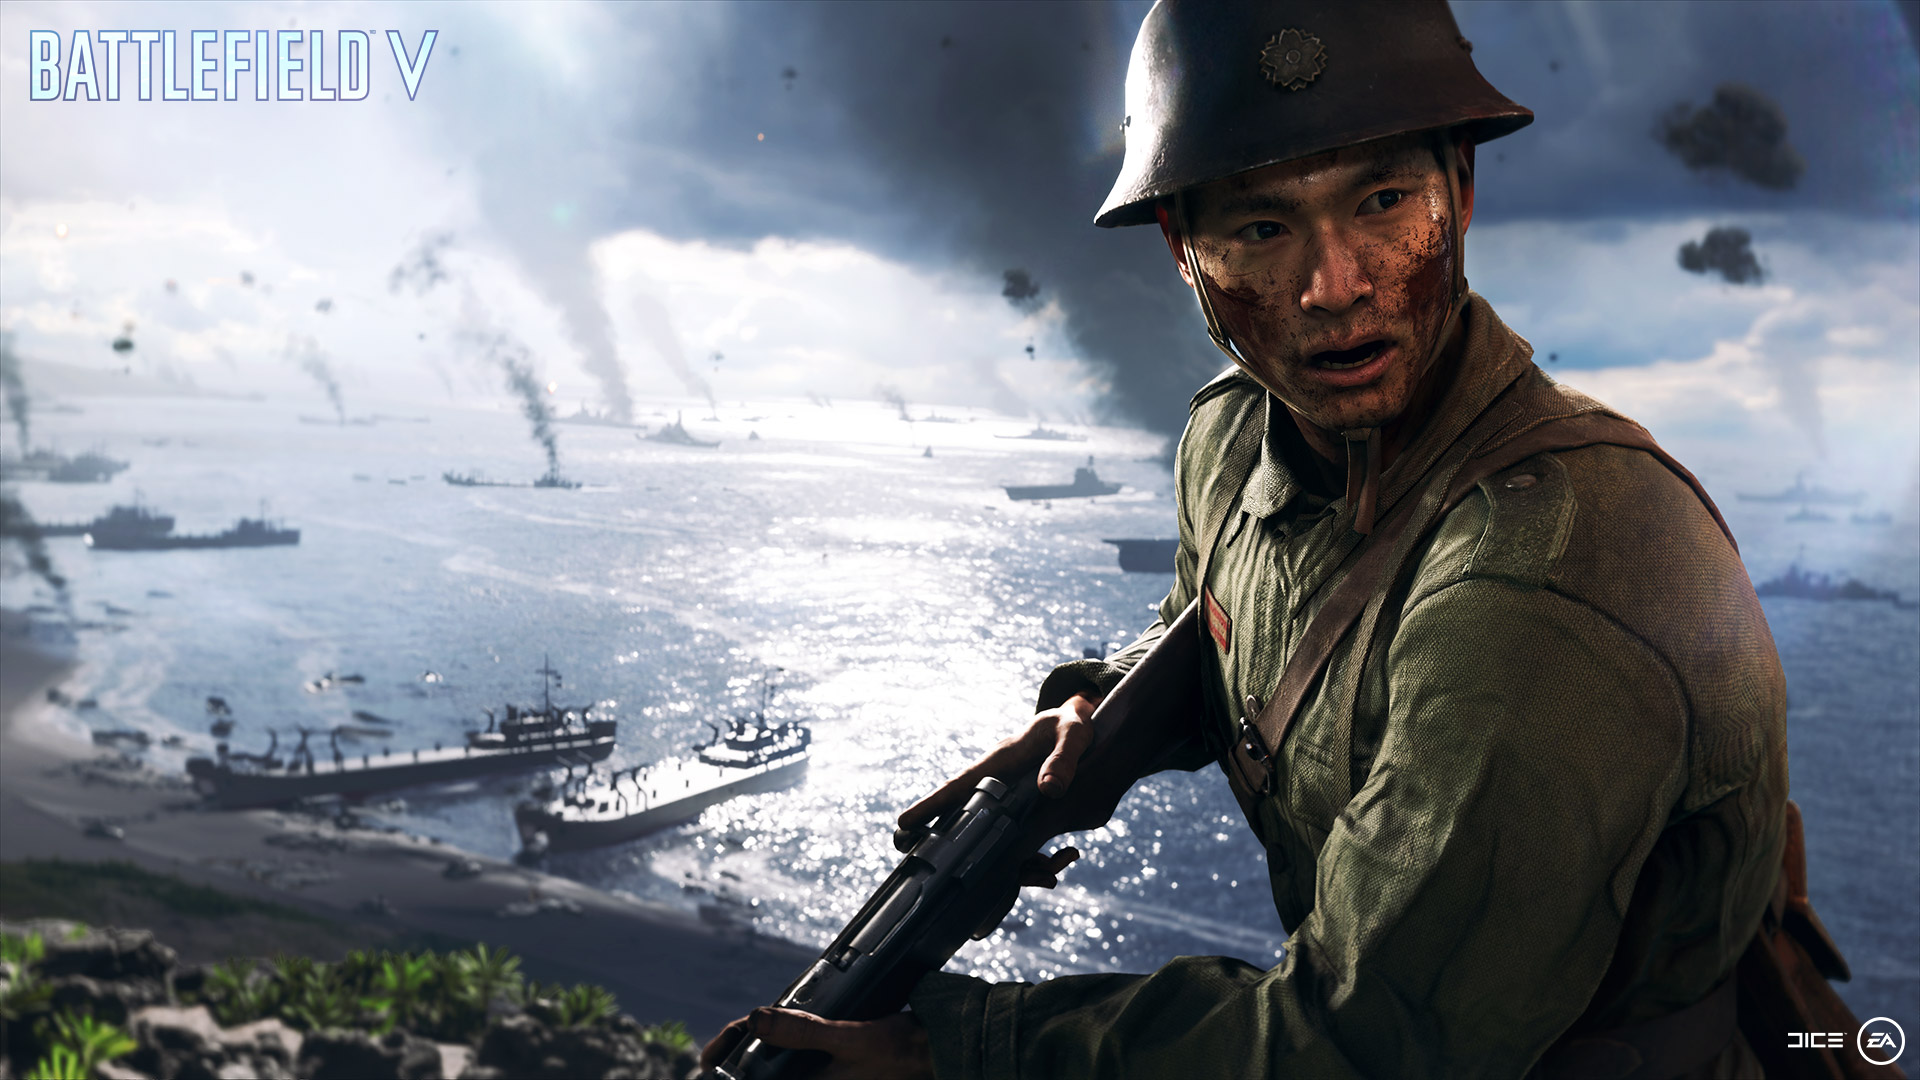 Battlefield V Wallpaper in 1920x1080